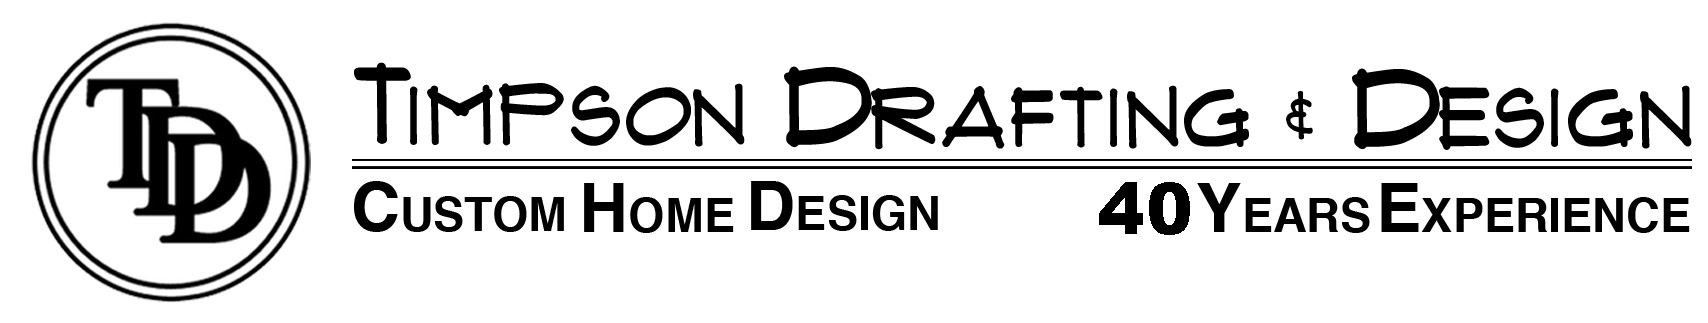 Timpson Drafting & Design